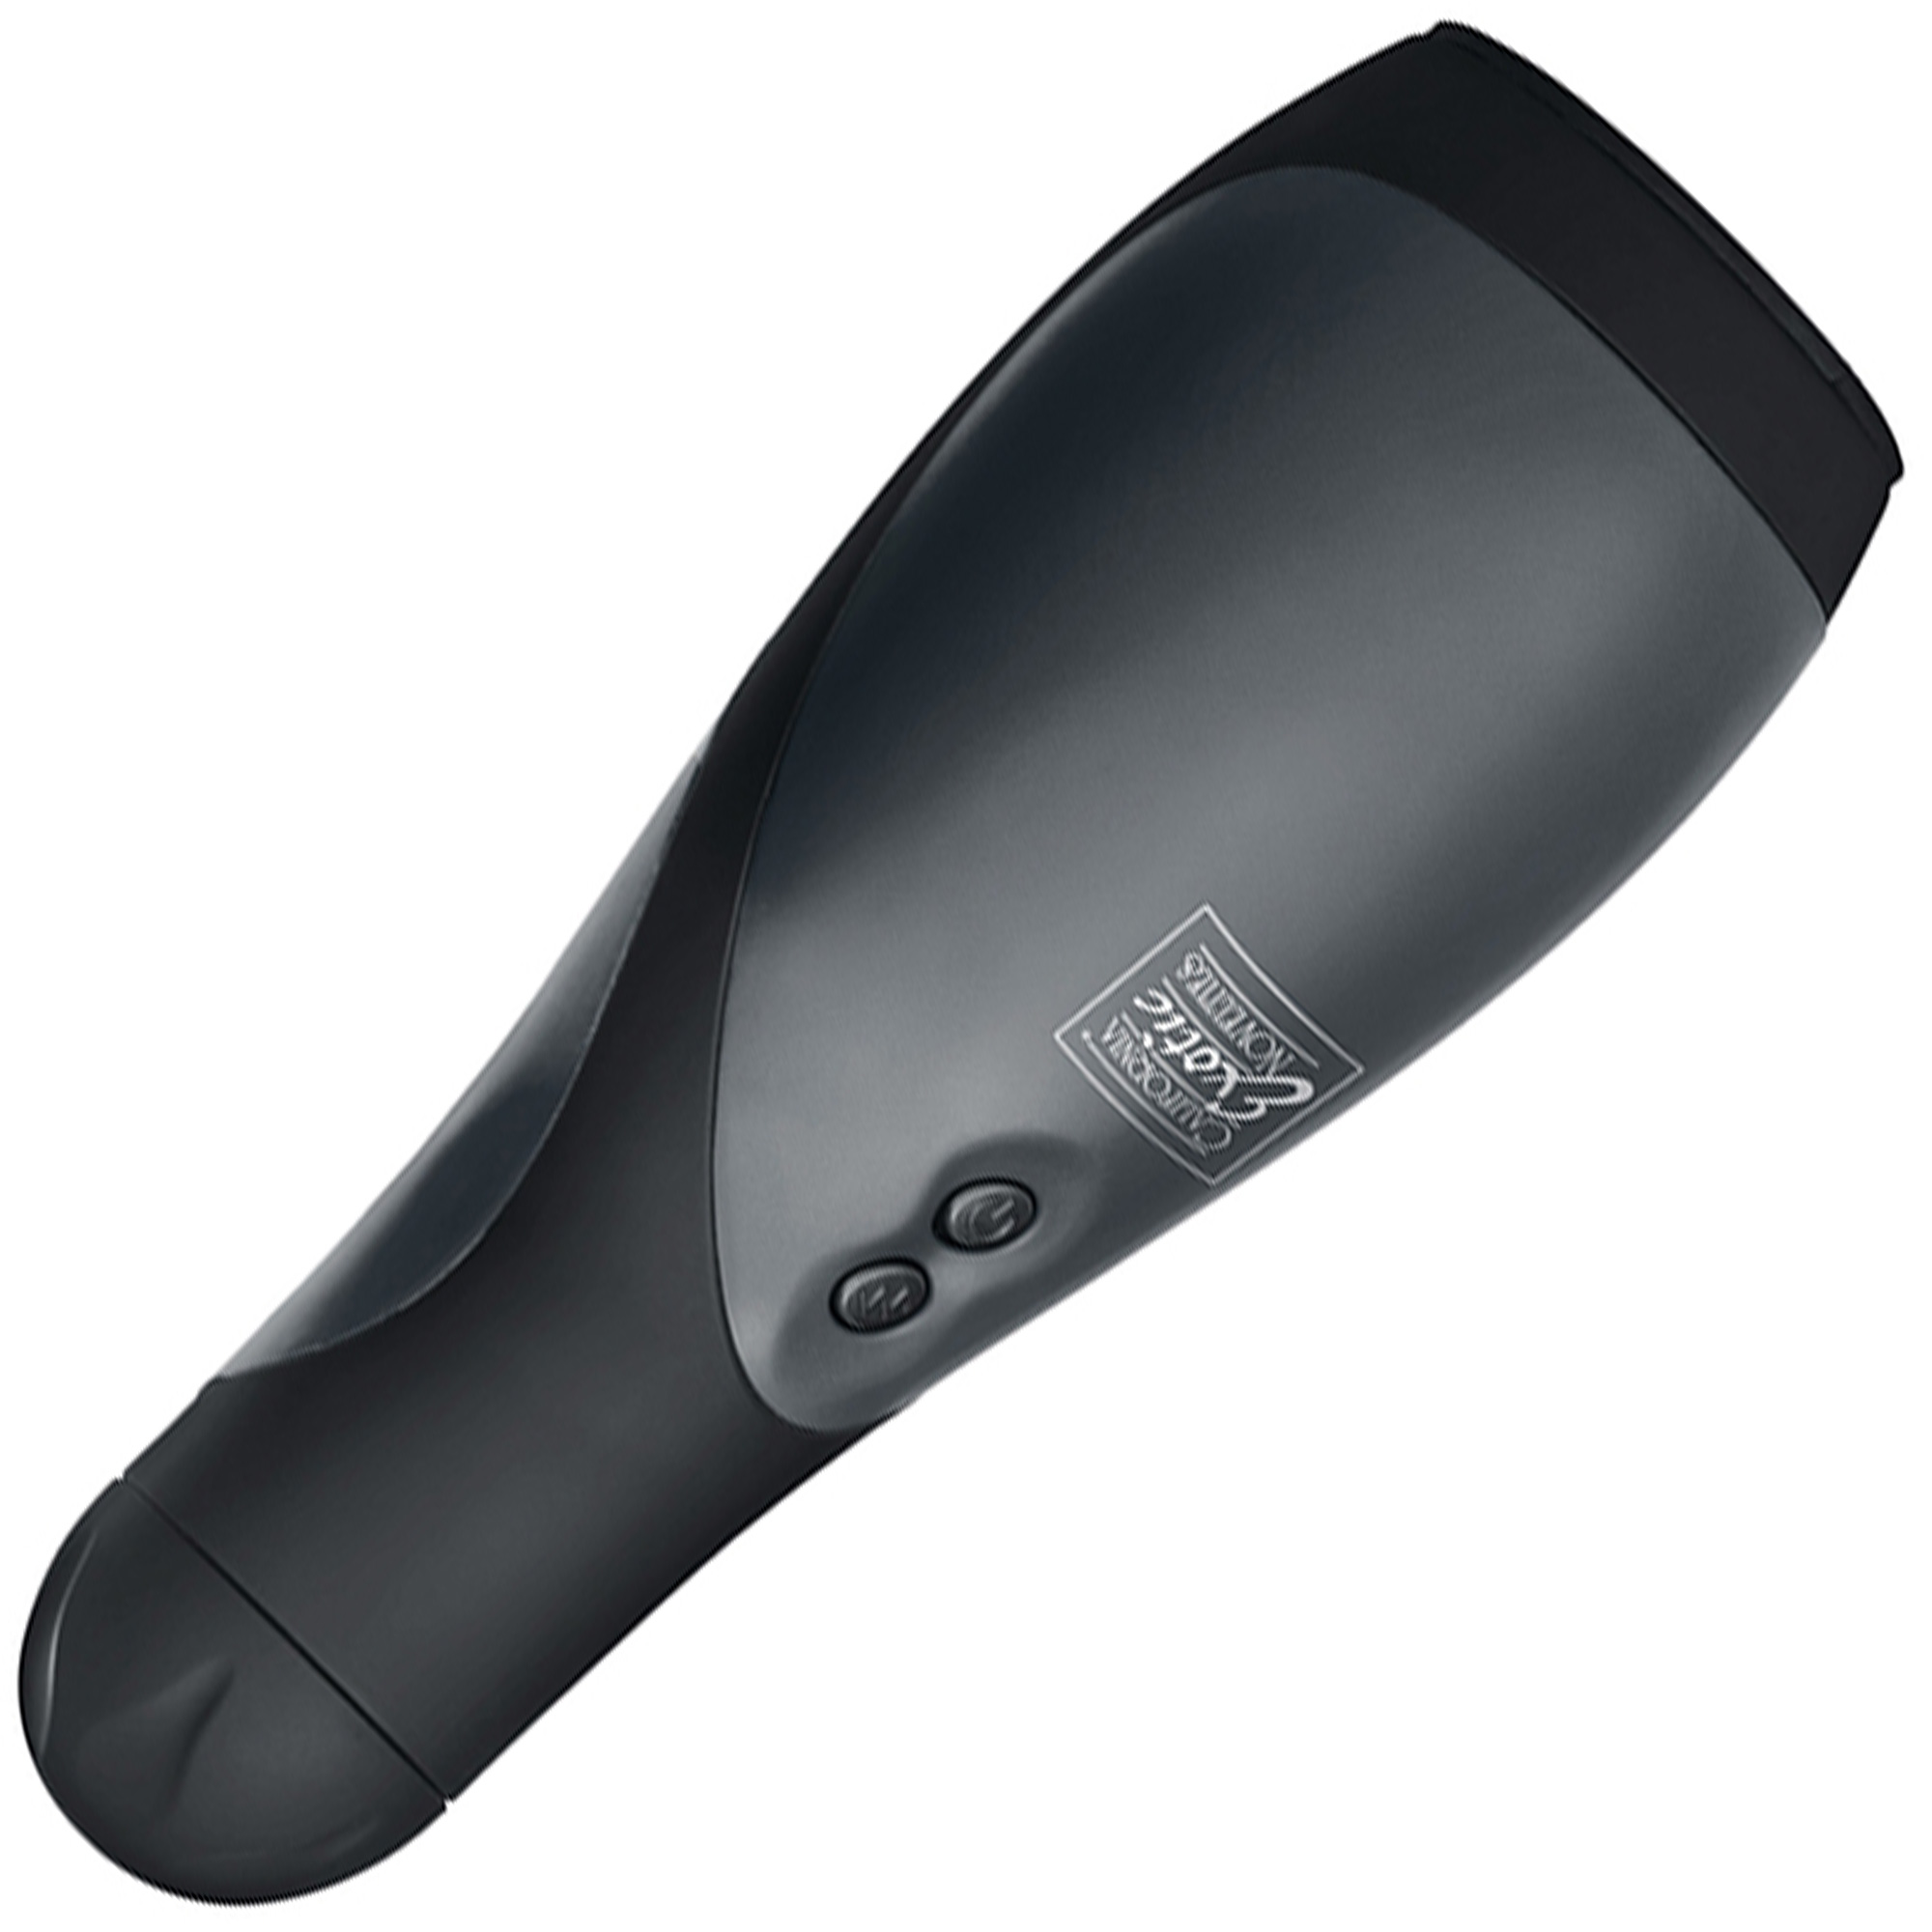 Apollo power stroker - black